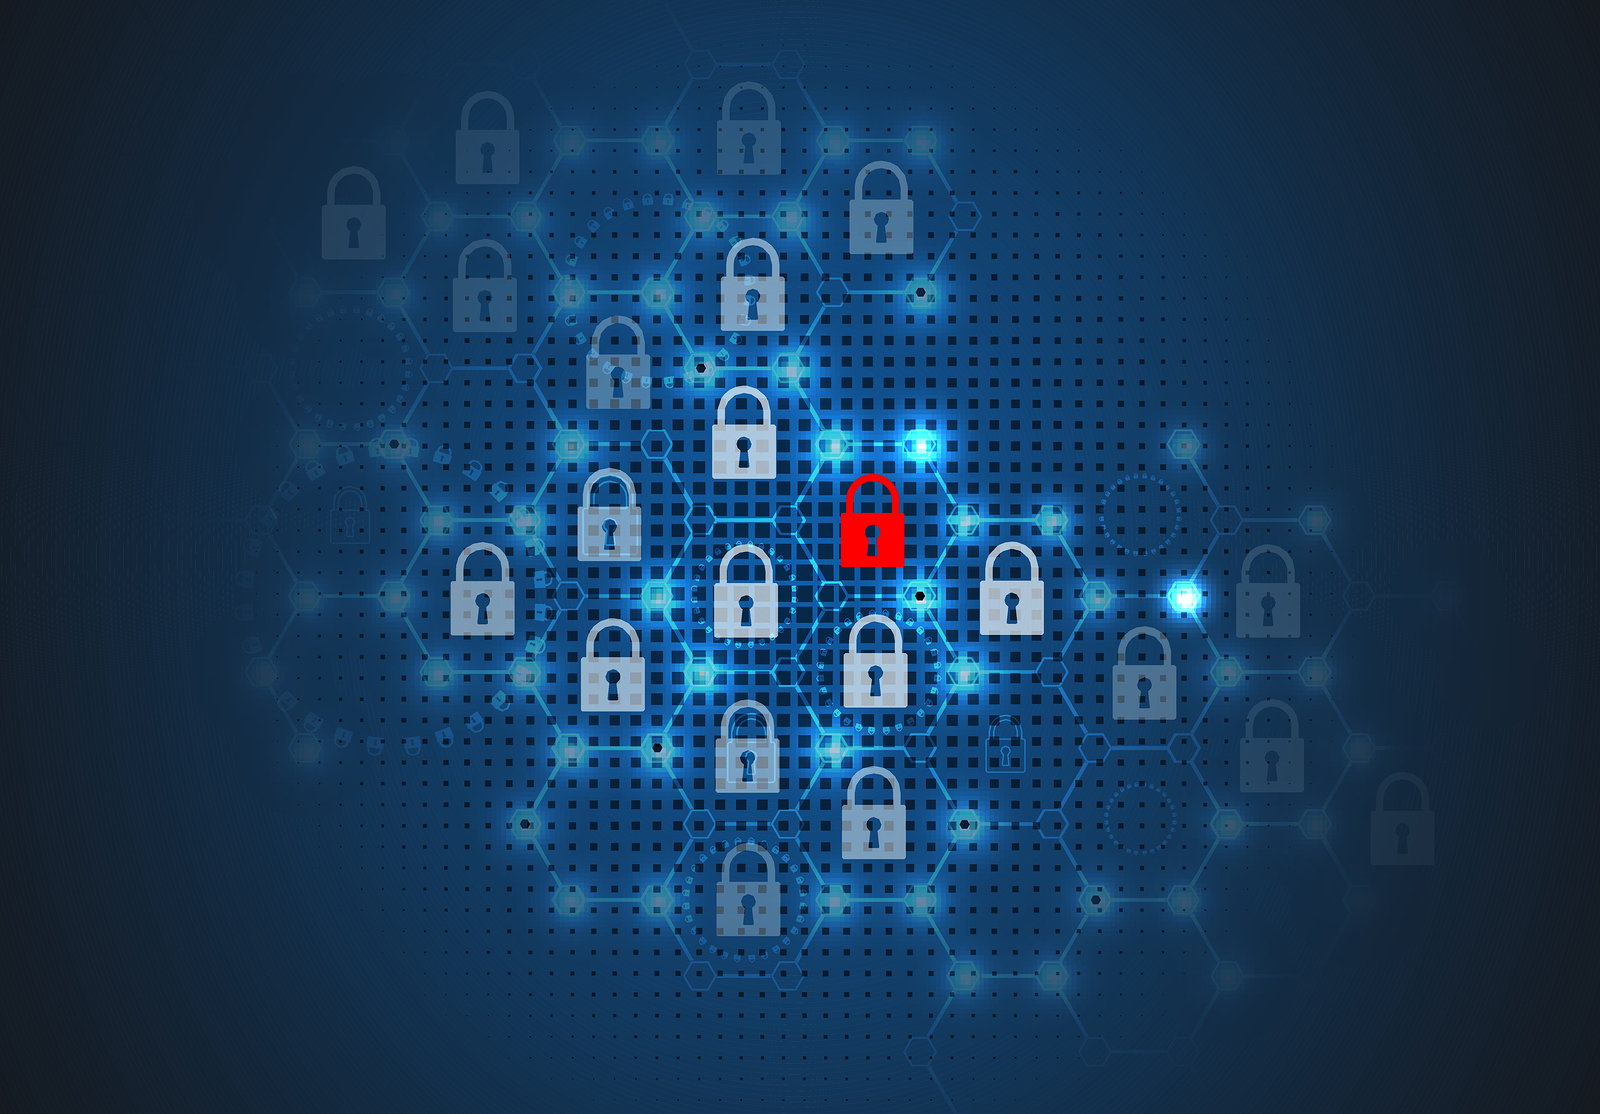 Advancing Healthcare Cybersecurity through Cyber Partnerships